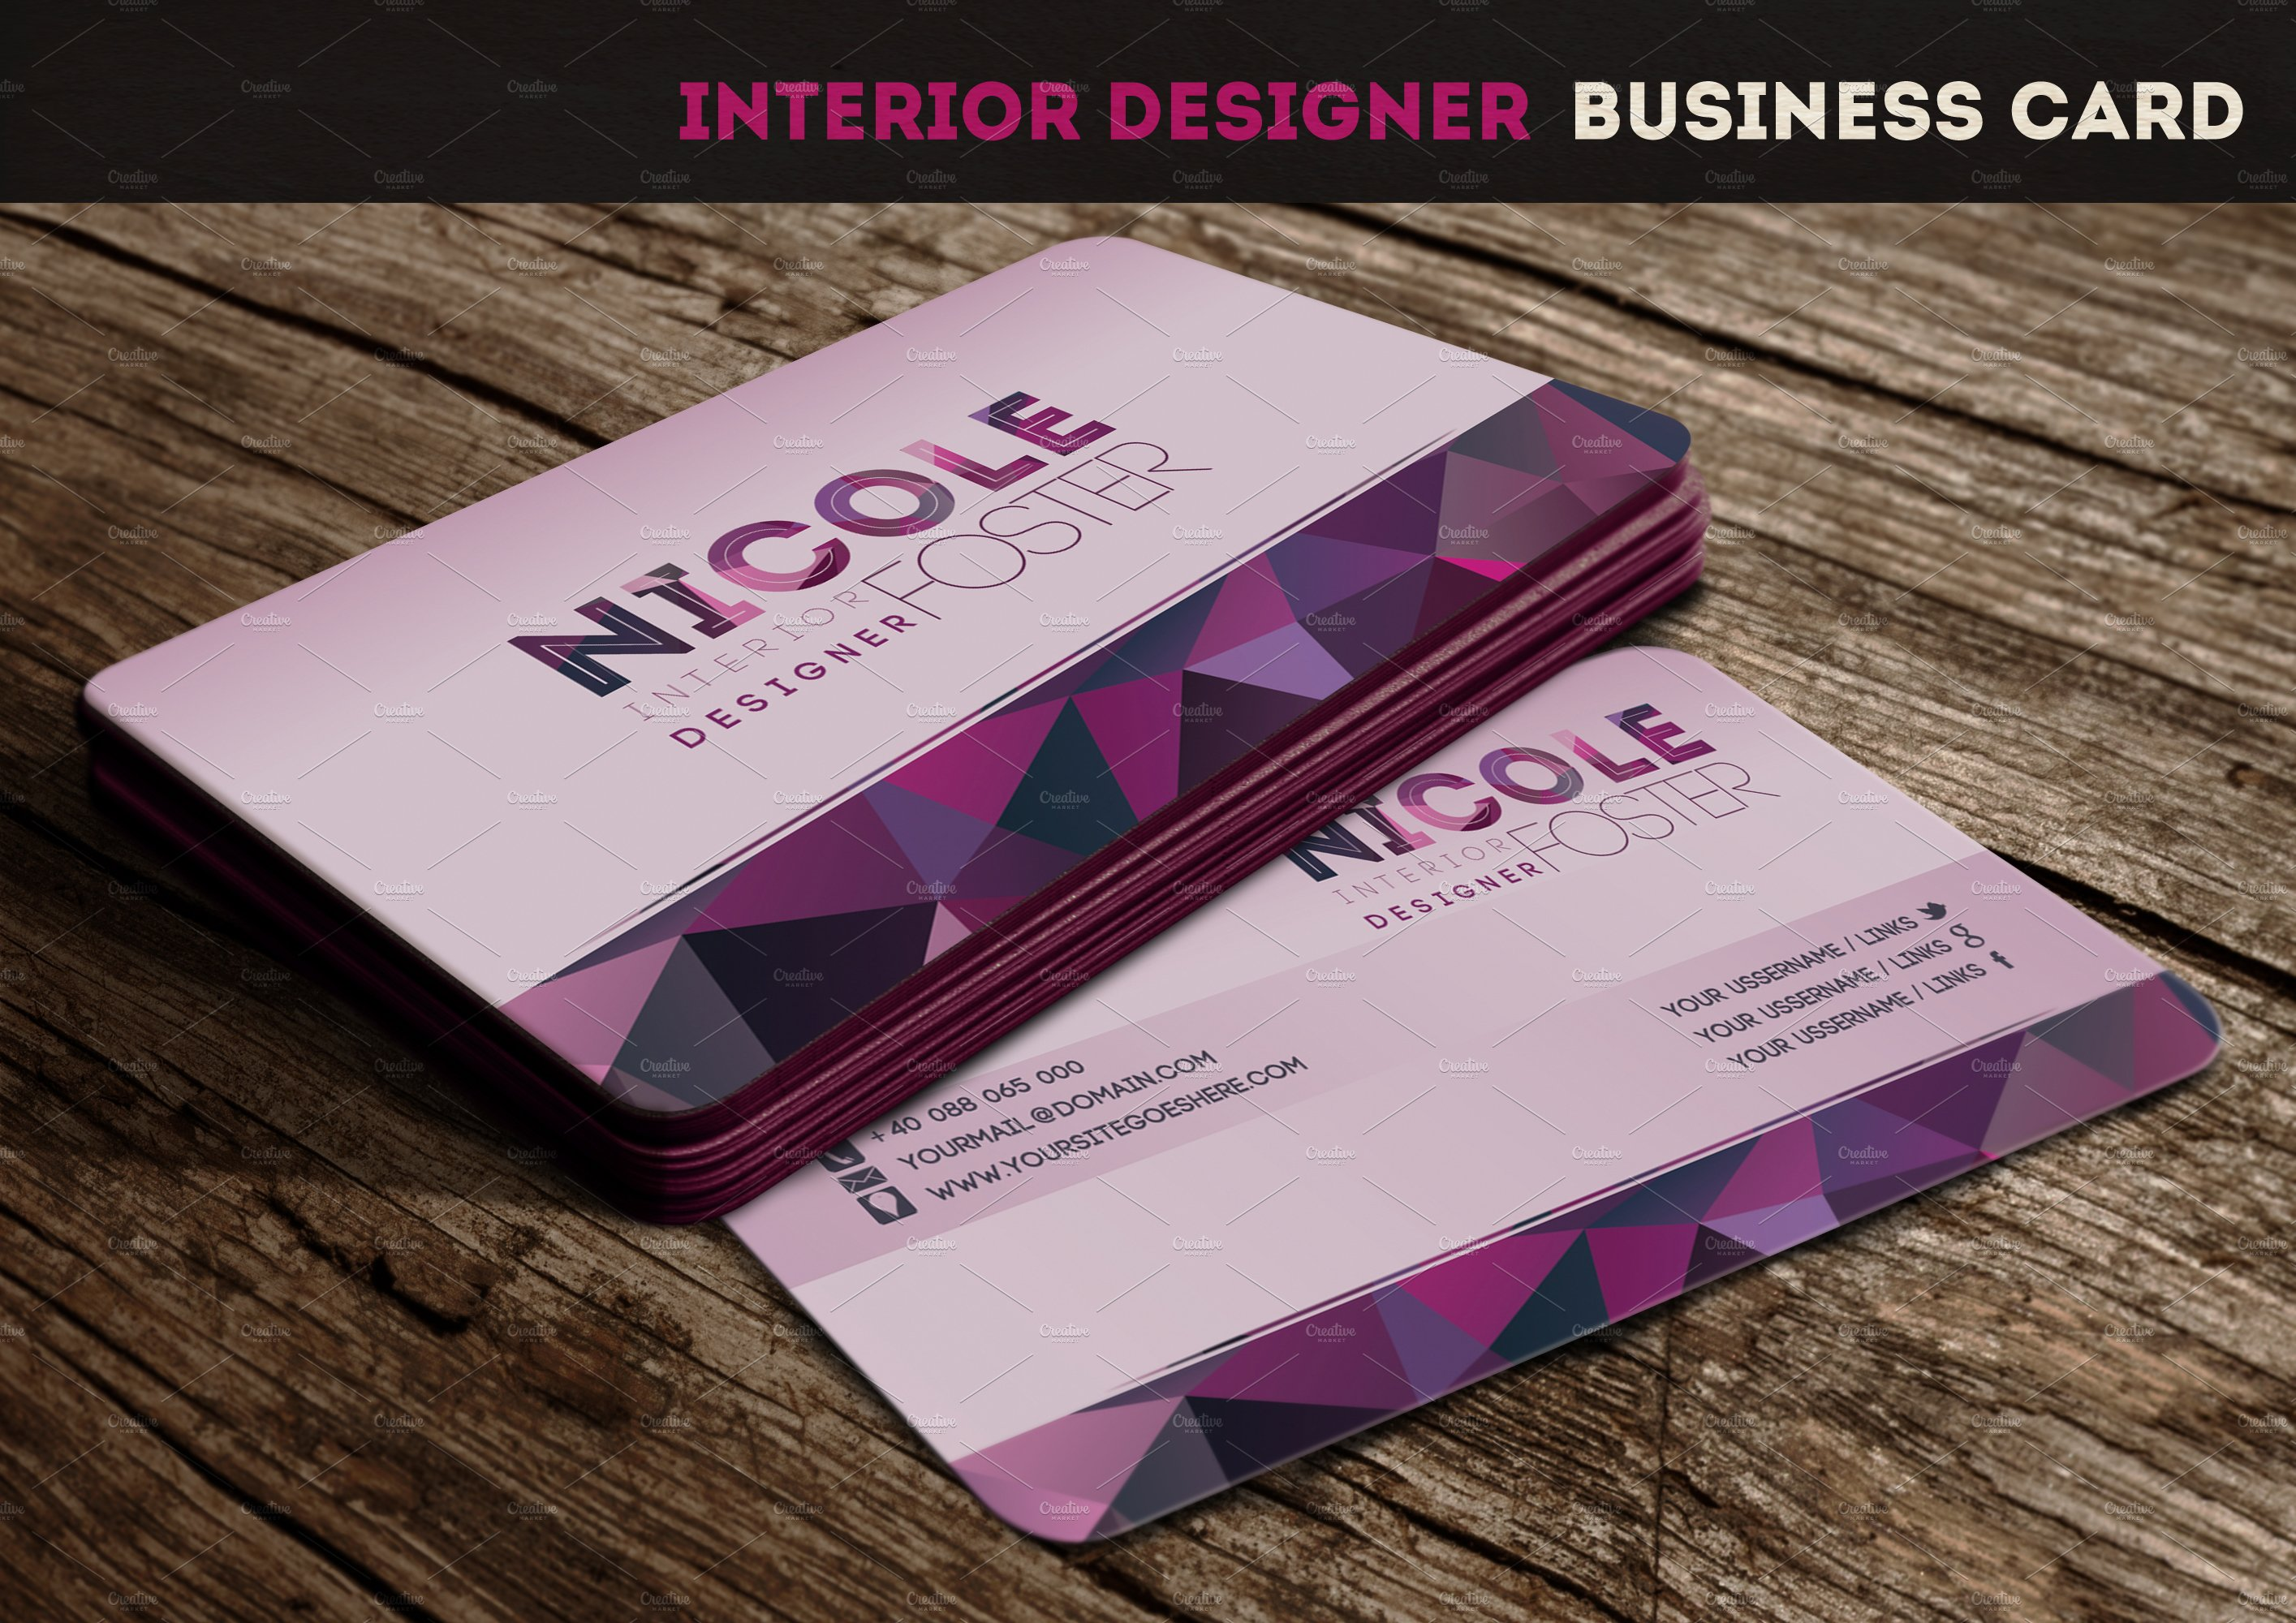 Interior designer business card business card templates - Business name for interior design company ...